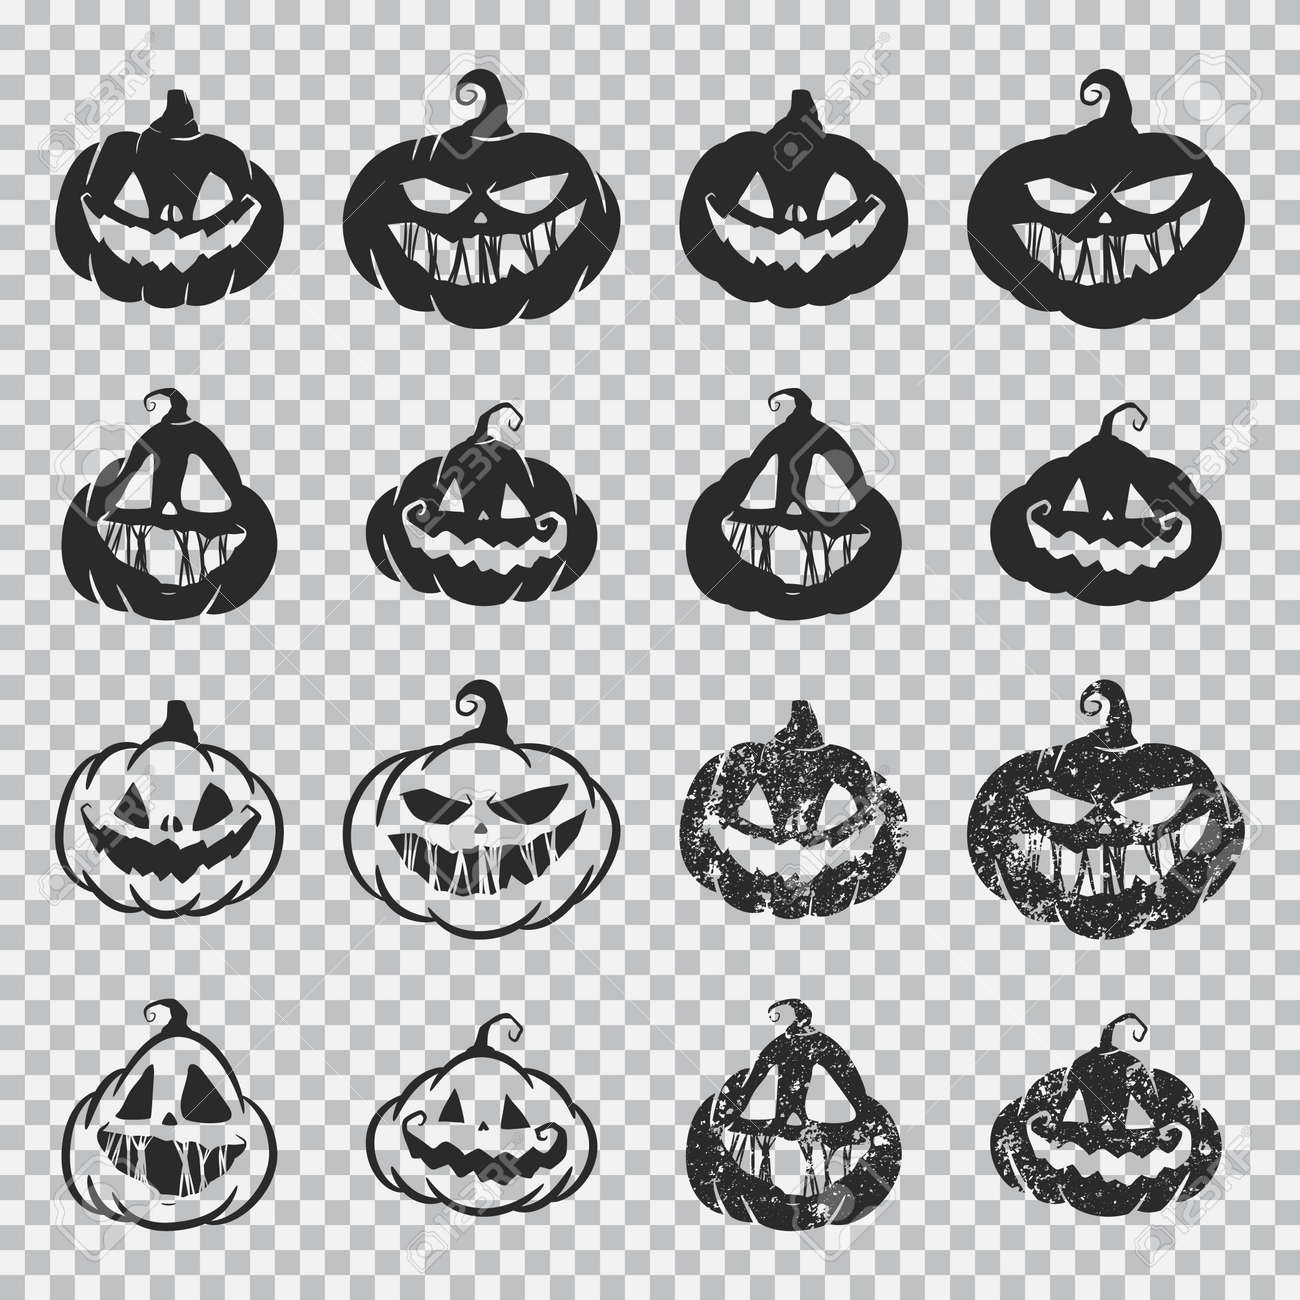 Halloween pumpkin faces vector black silhouette set isolated on a transparent background. - 172748288